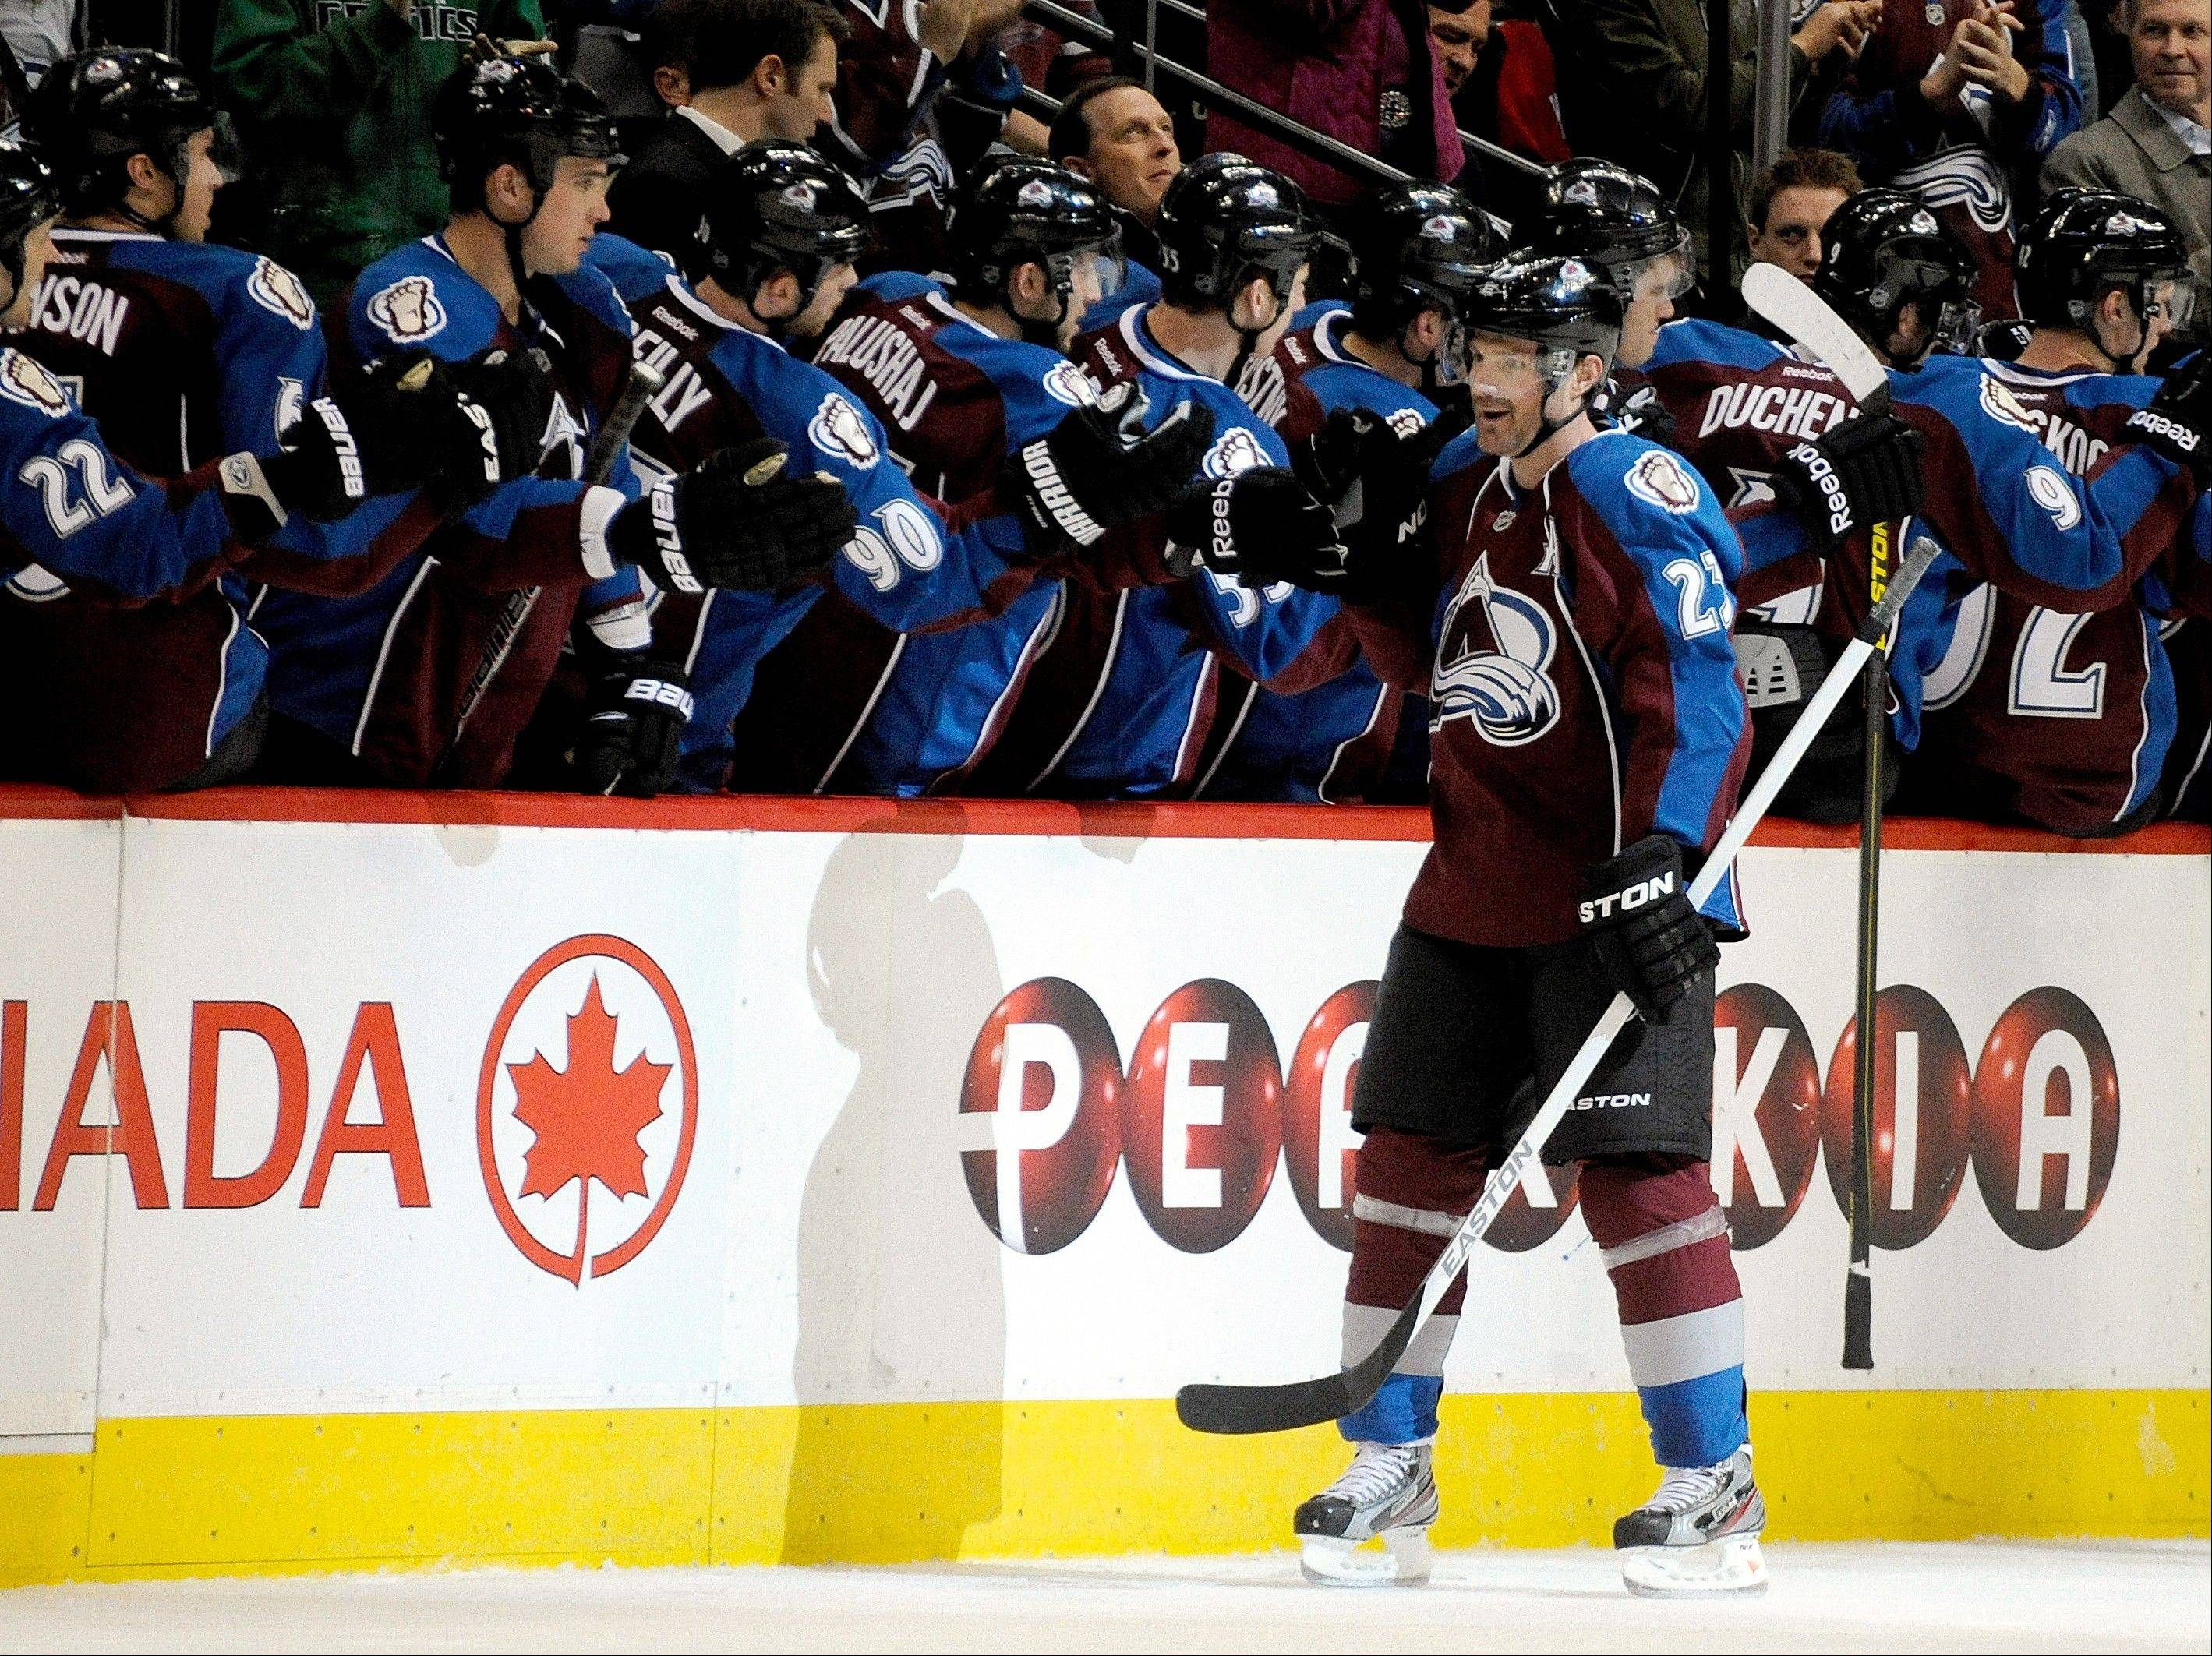 Colorado Avalanche right wing Milan Hejduk (23), celebrates a goal against the Chicago Blackhawks with teammates during the second period .